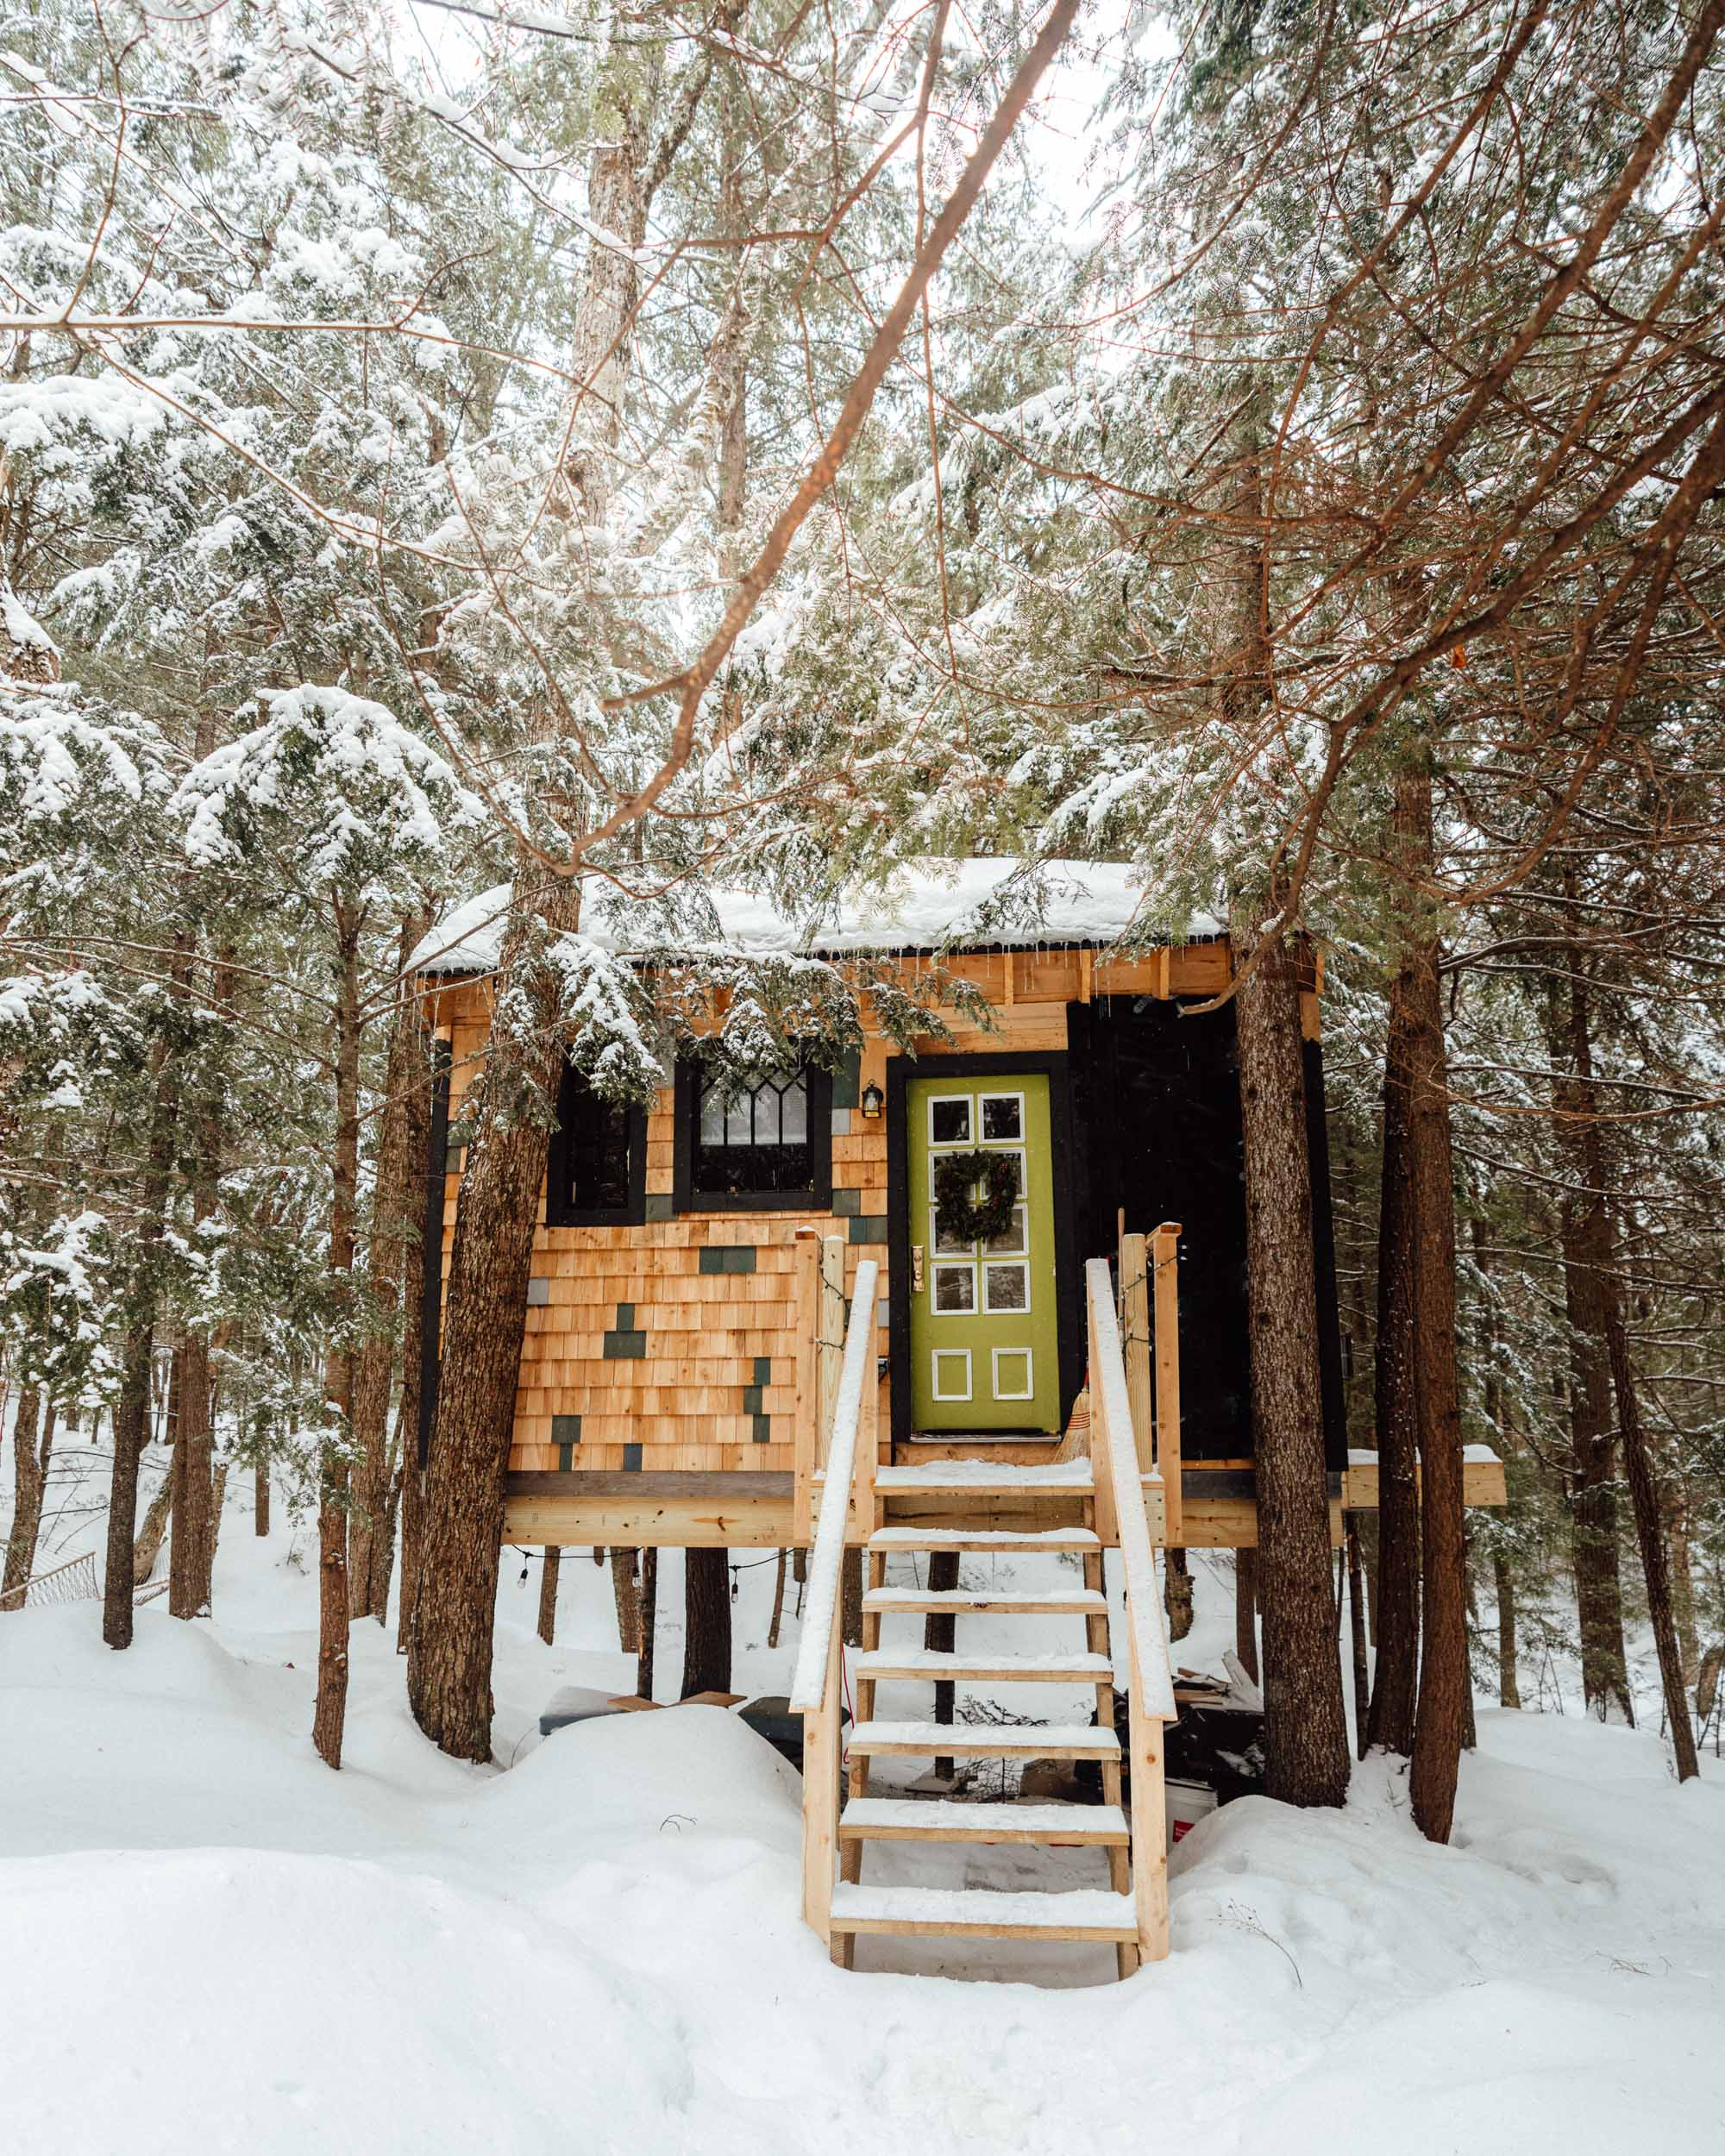 Vermont Treehouse Airbnb in the trees in winter via Find Us Lost